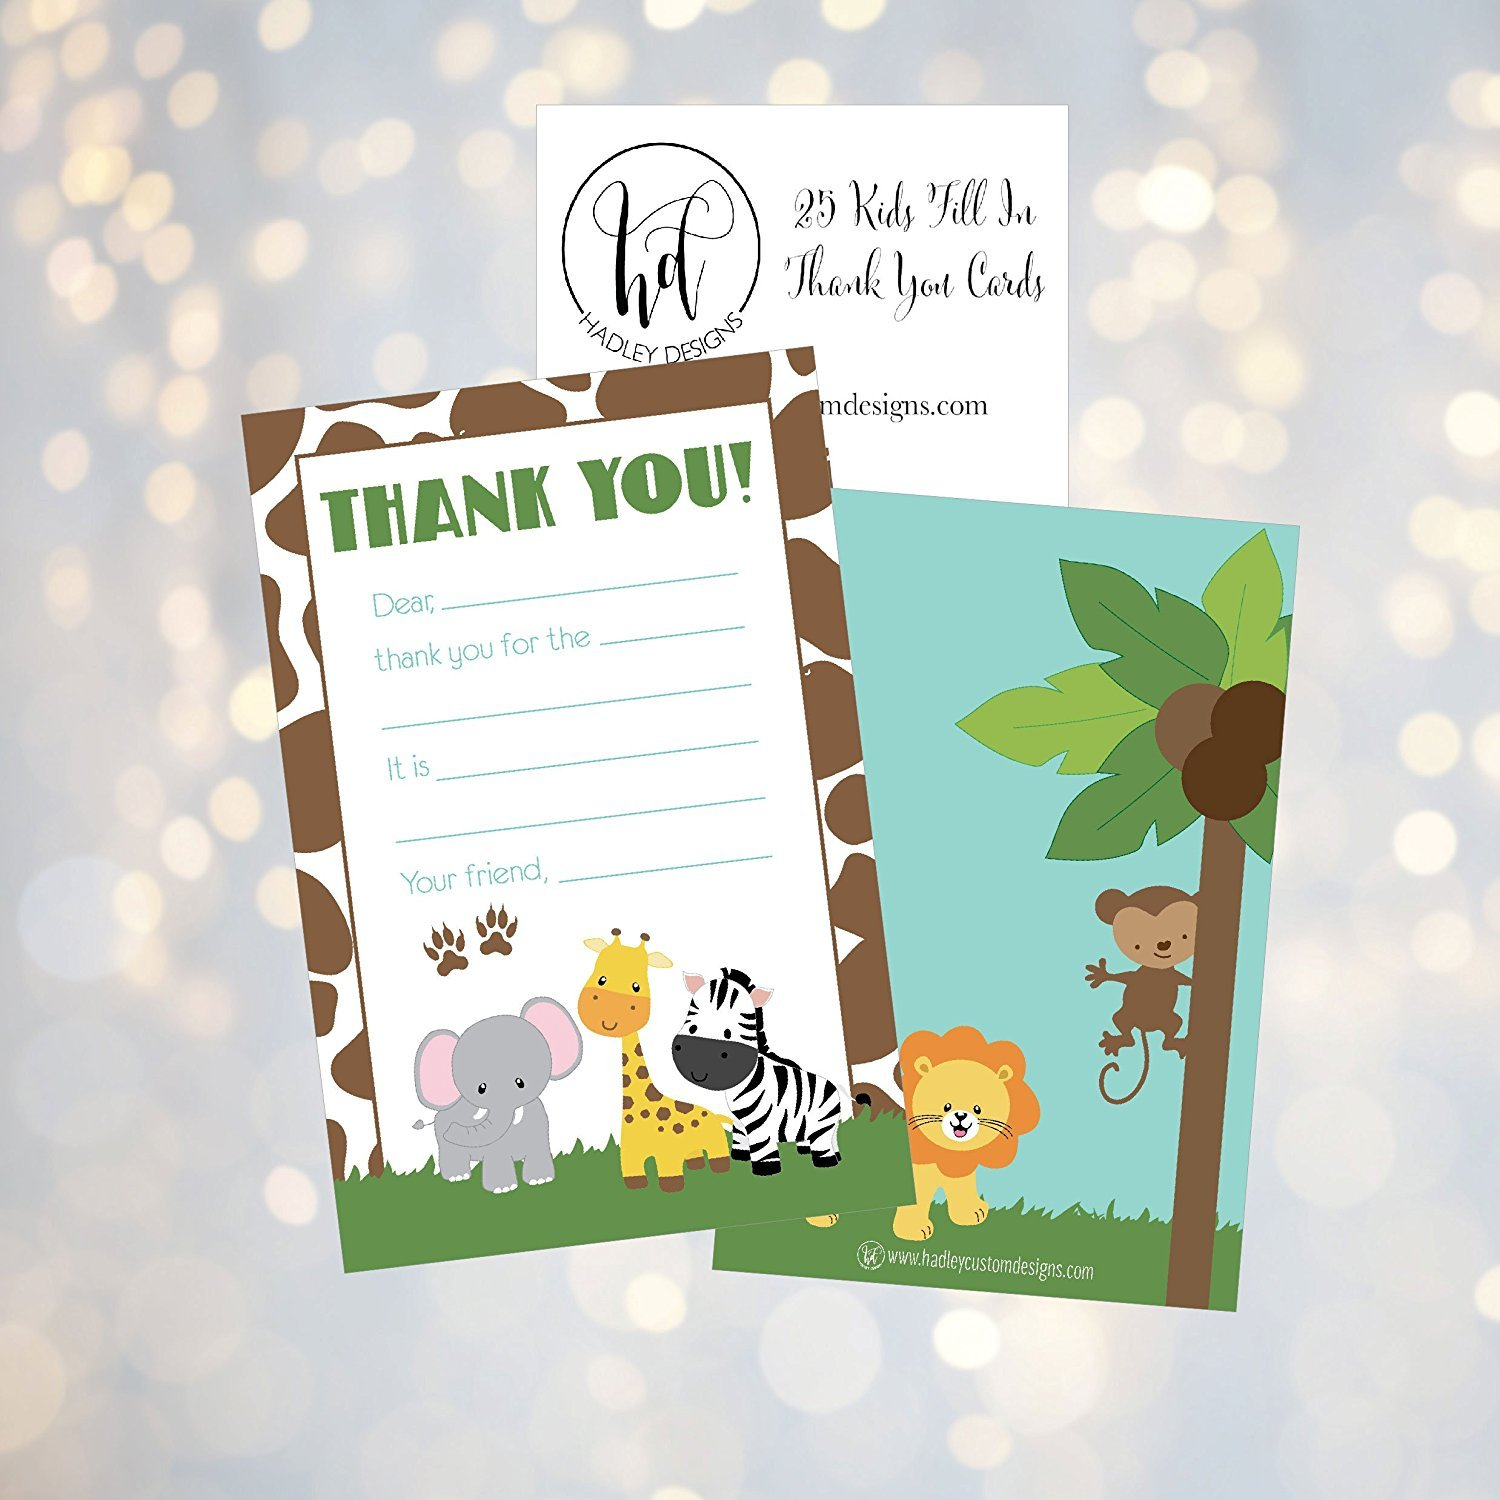 25 Jungle Kids Thank You Cards Fill In Notes For Kid Blank Personalized Yous Birthday Gifts Stationery Children Boys And Girls